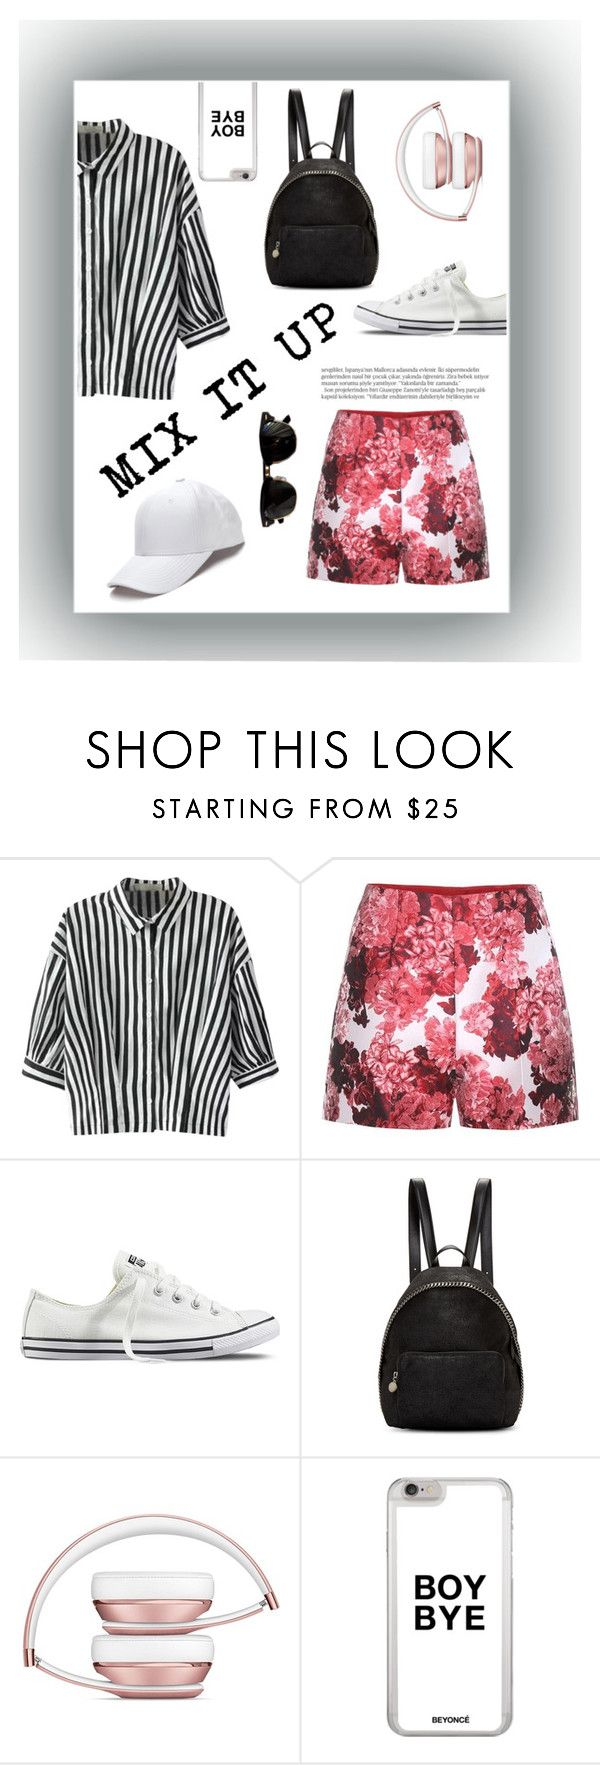 """""""MIX IT UP"""" by kadylady1 ❤ liked on Polyvore featuring Relaxfeel, Moncler Gamme Rouge, Converse, STELLA McCARTNEY, Balmain and Ray-Ban"""